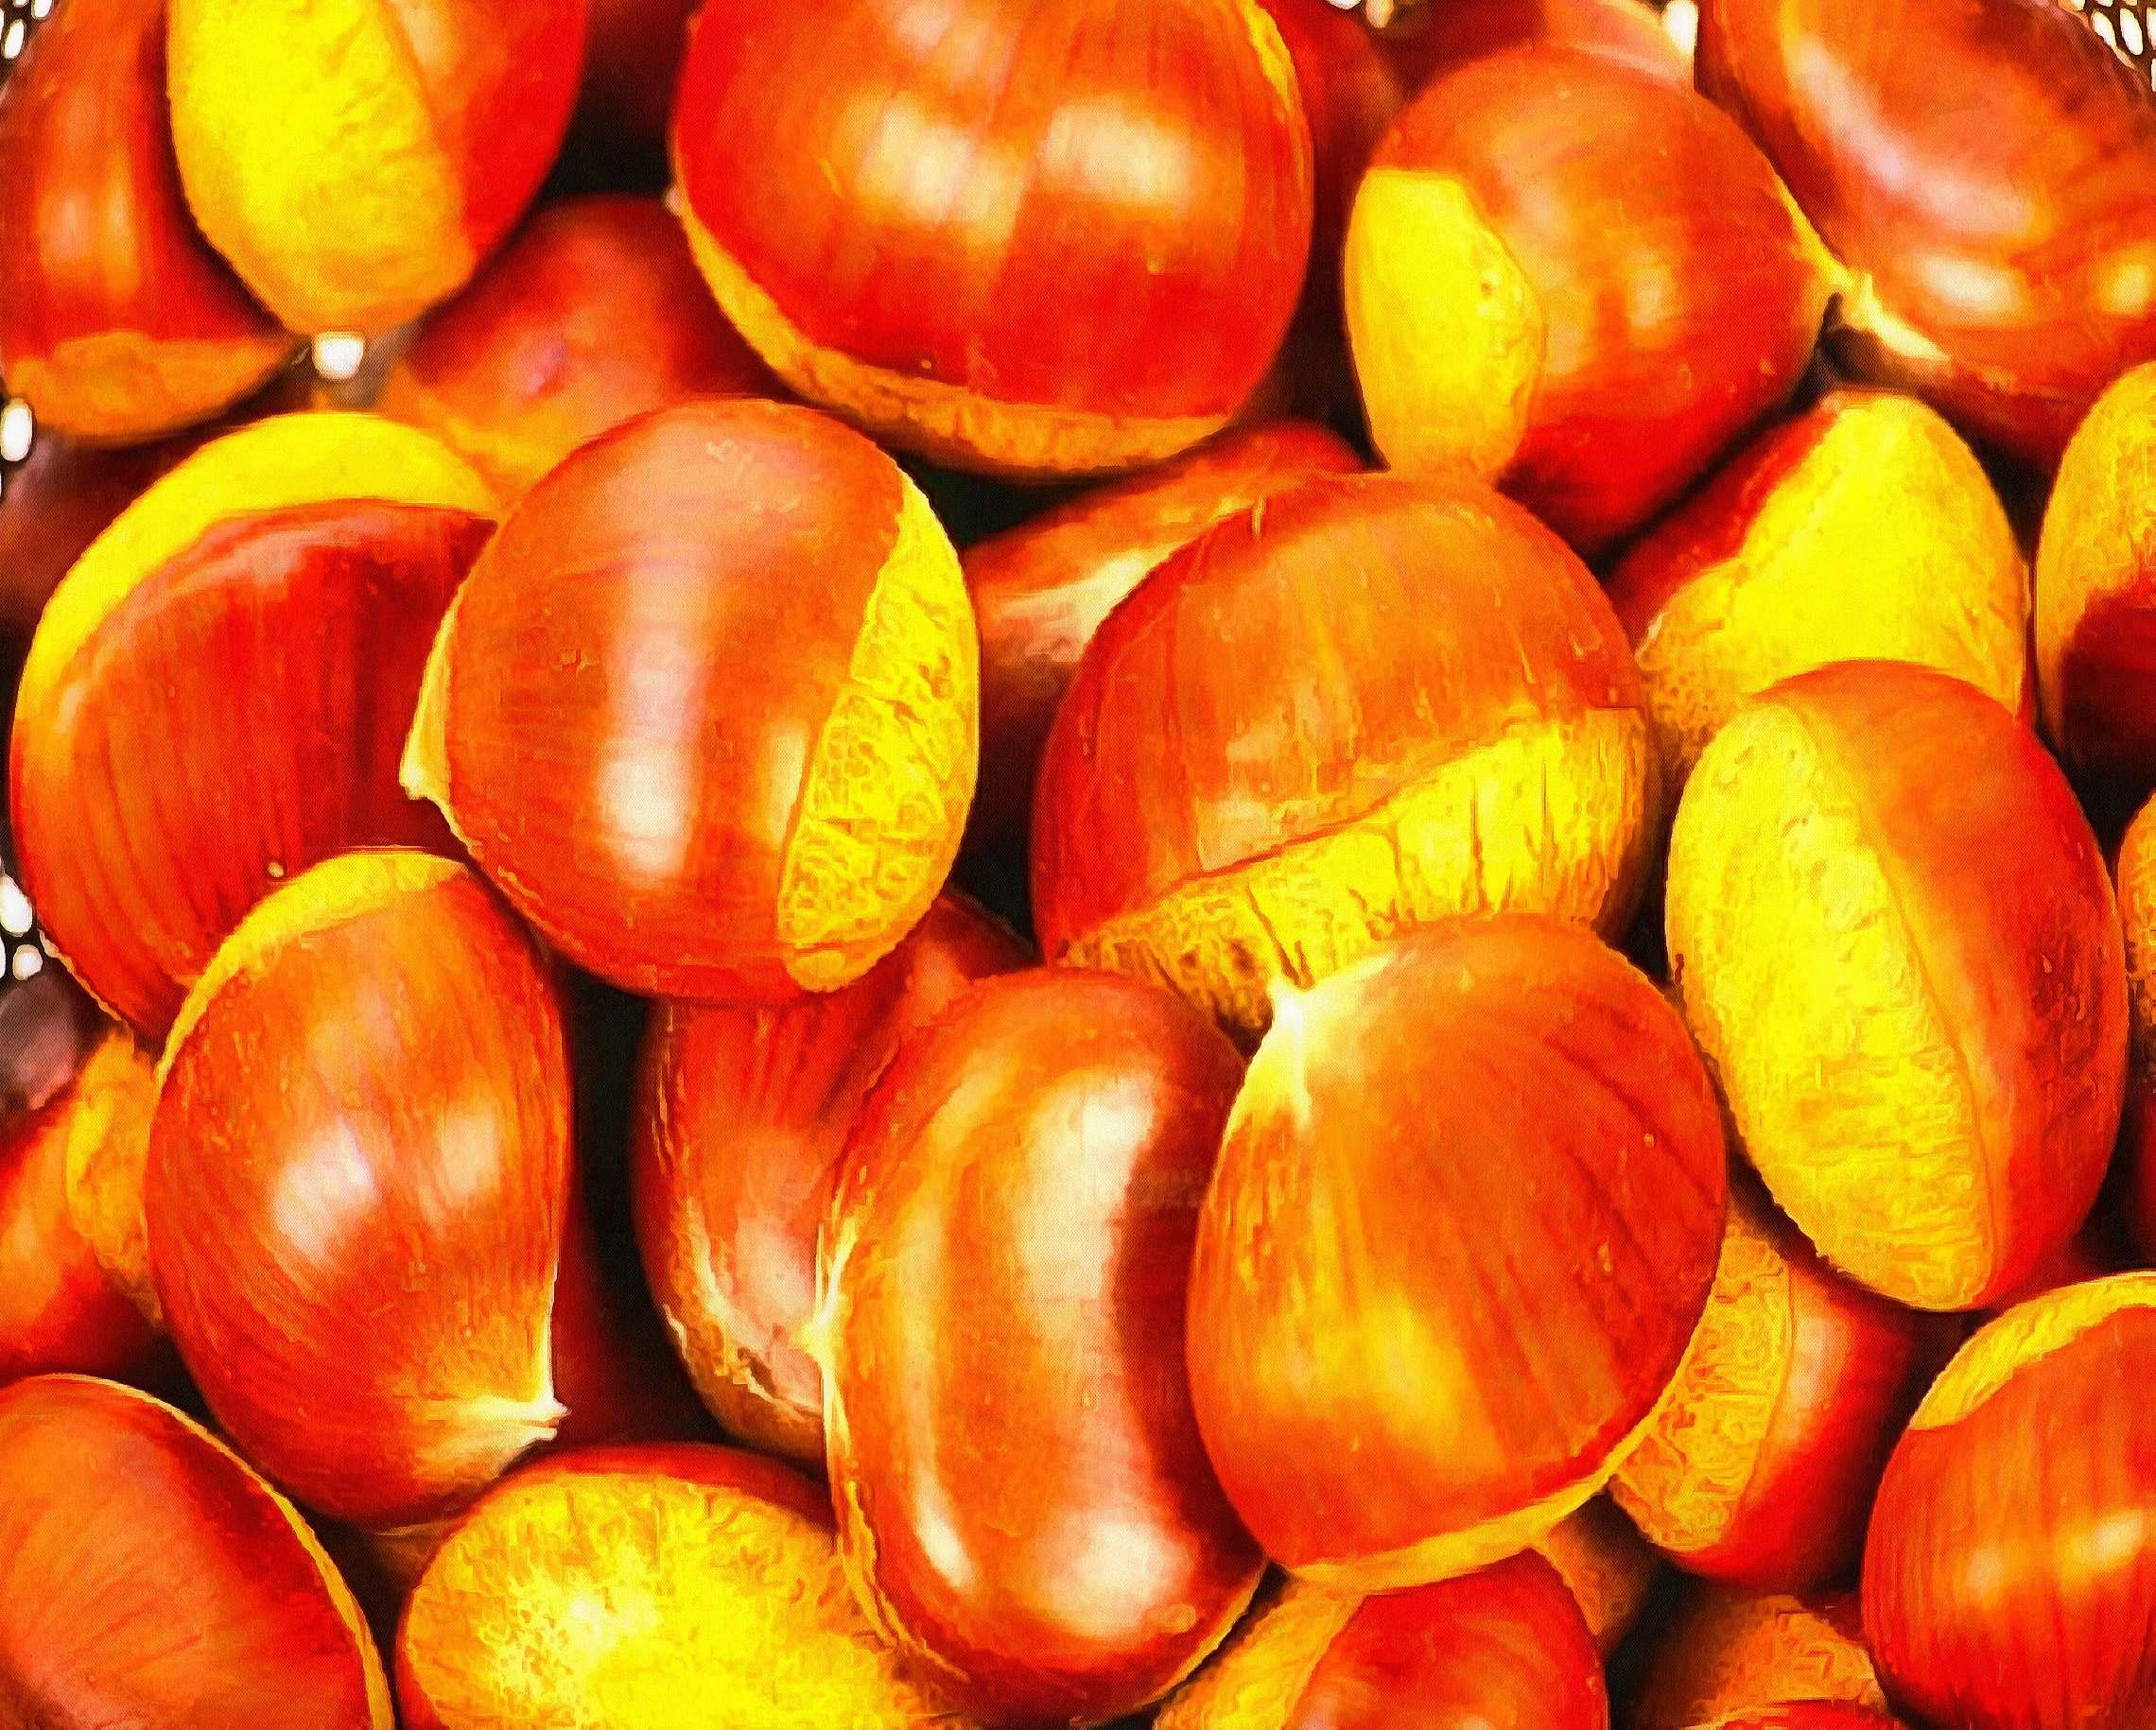 chestnut, sweet  chestnut, food, holiday, thanksgiving, feast, thank you,